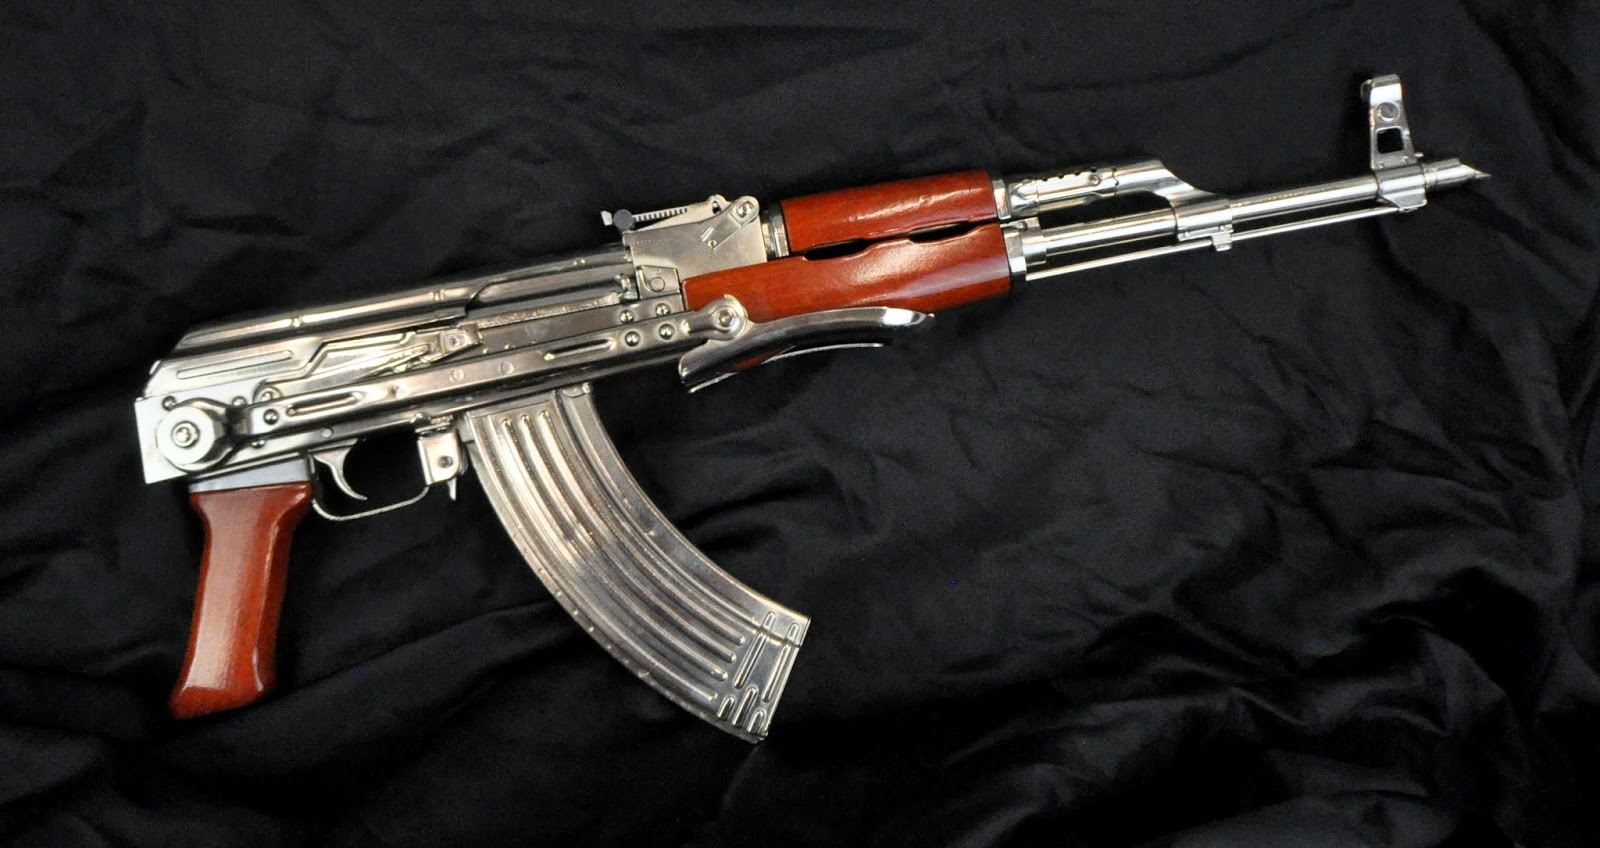 Nickel plated AK47